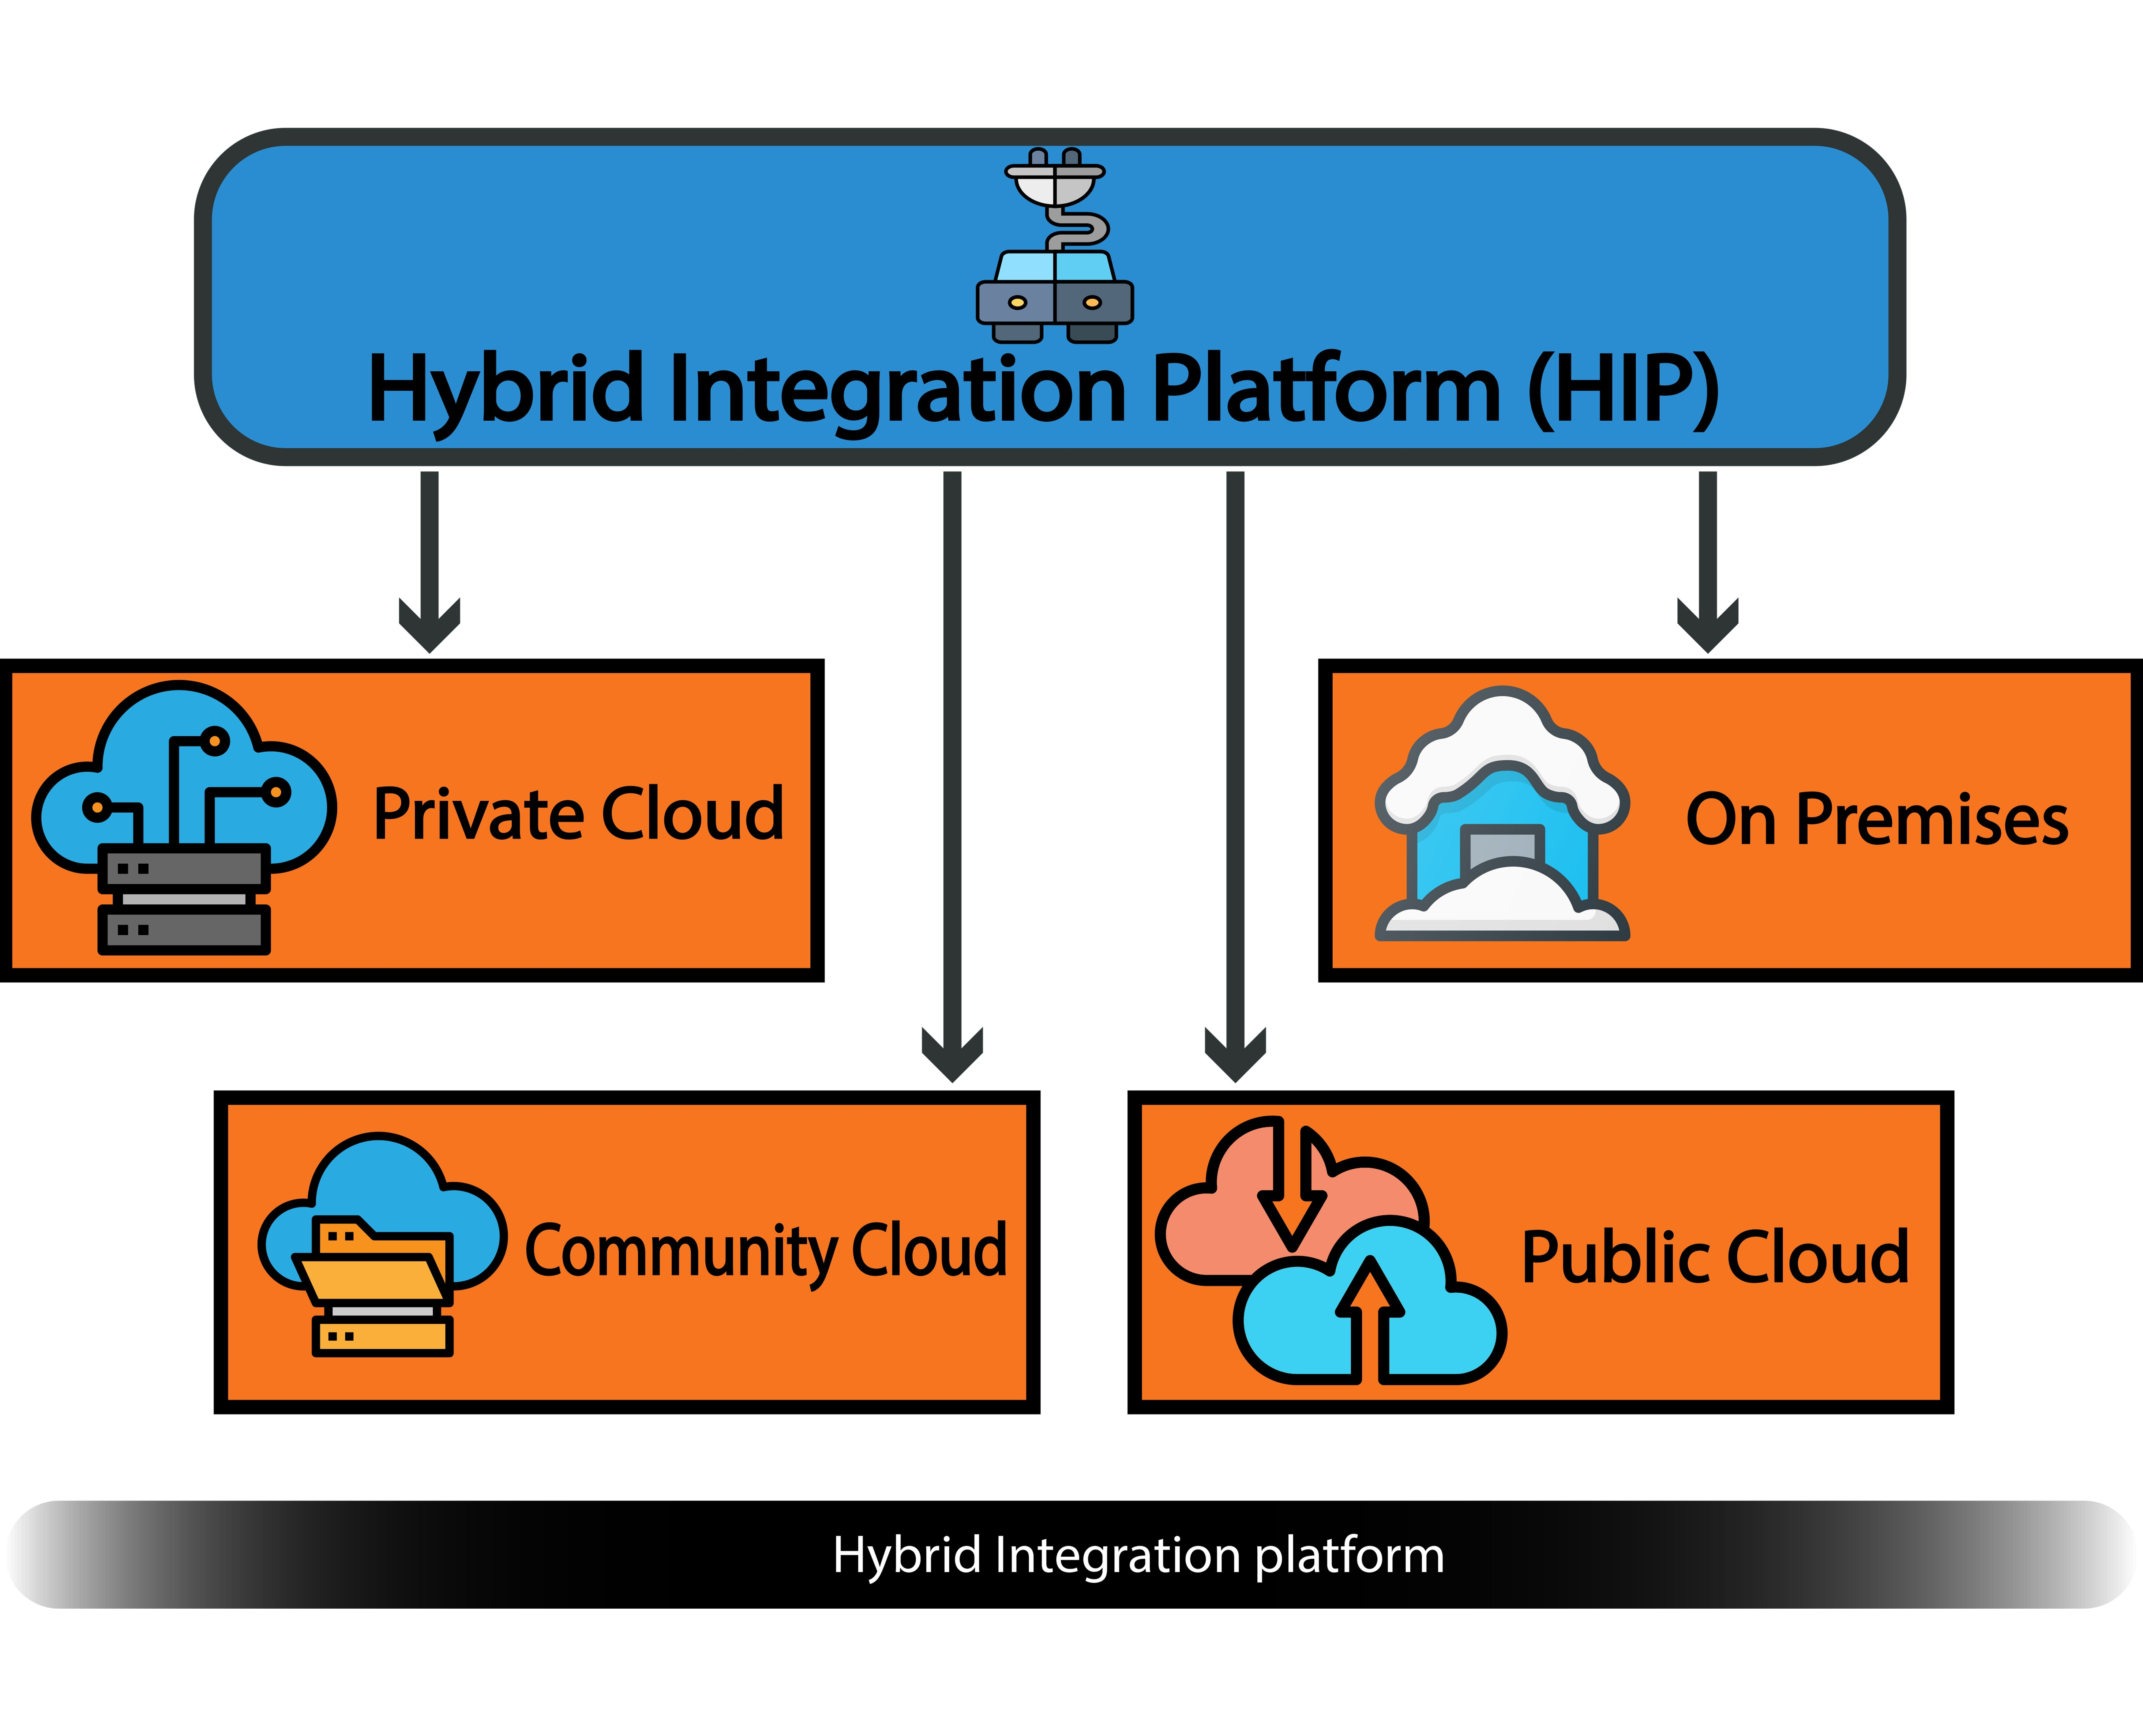 Figure 2, Hybrid Integration Platform